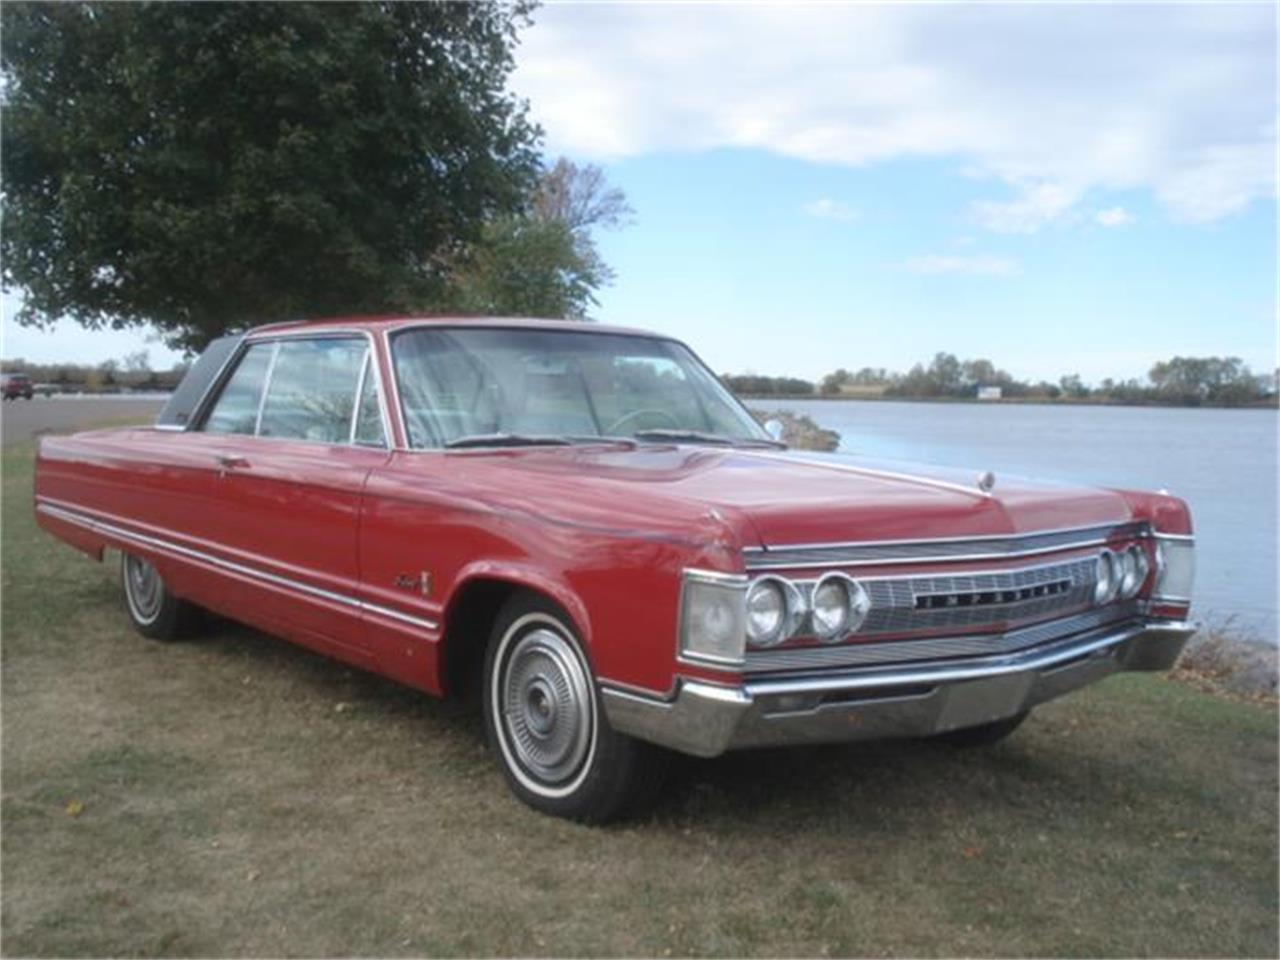 Large Picture of Classic 1967 Chrysler Imperial located in South Dakota - $16,550.00 - FNNW